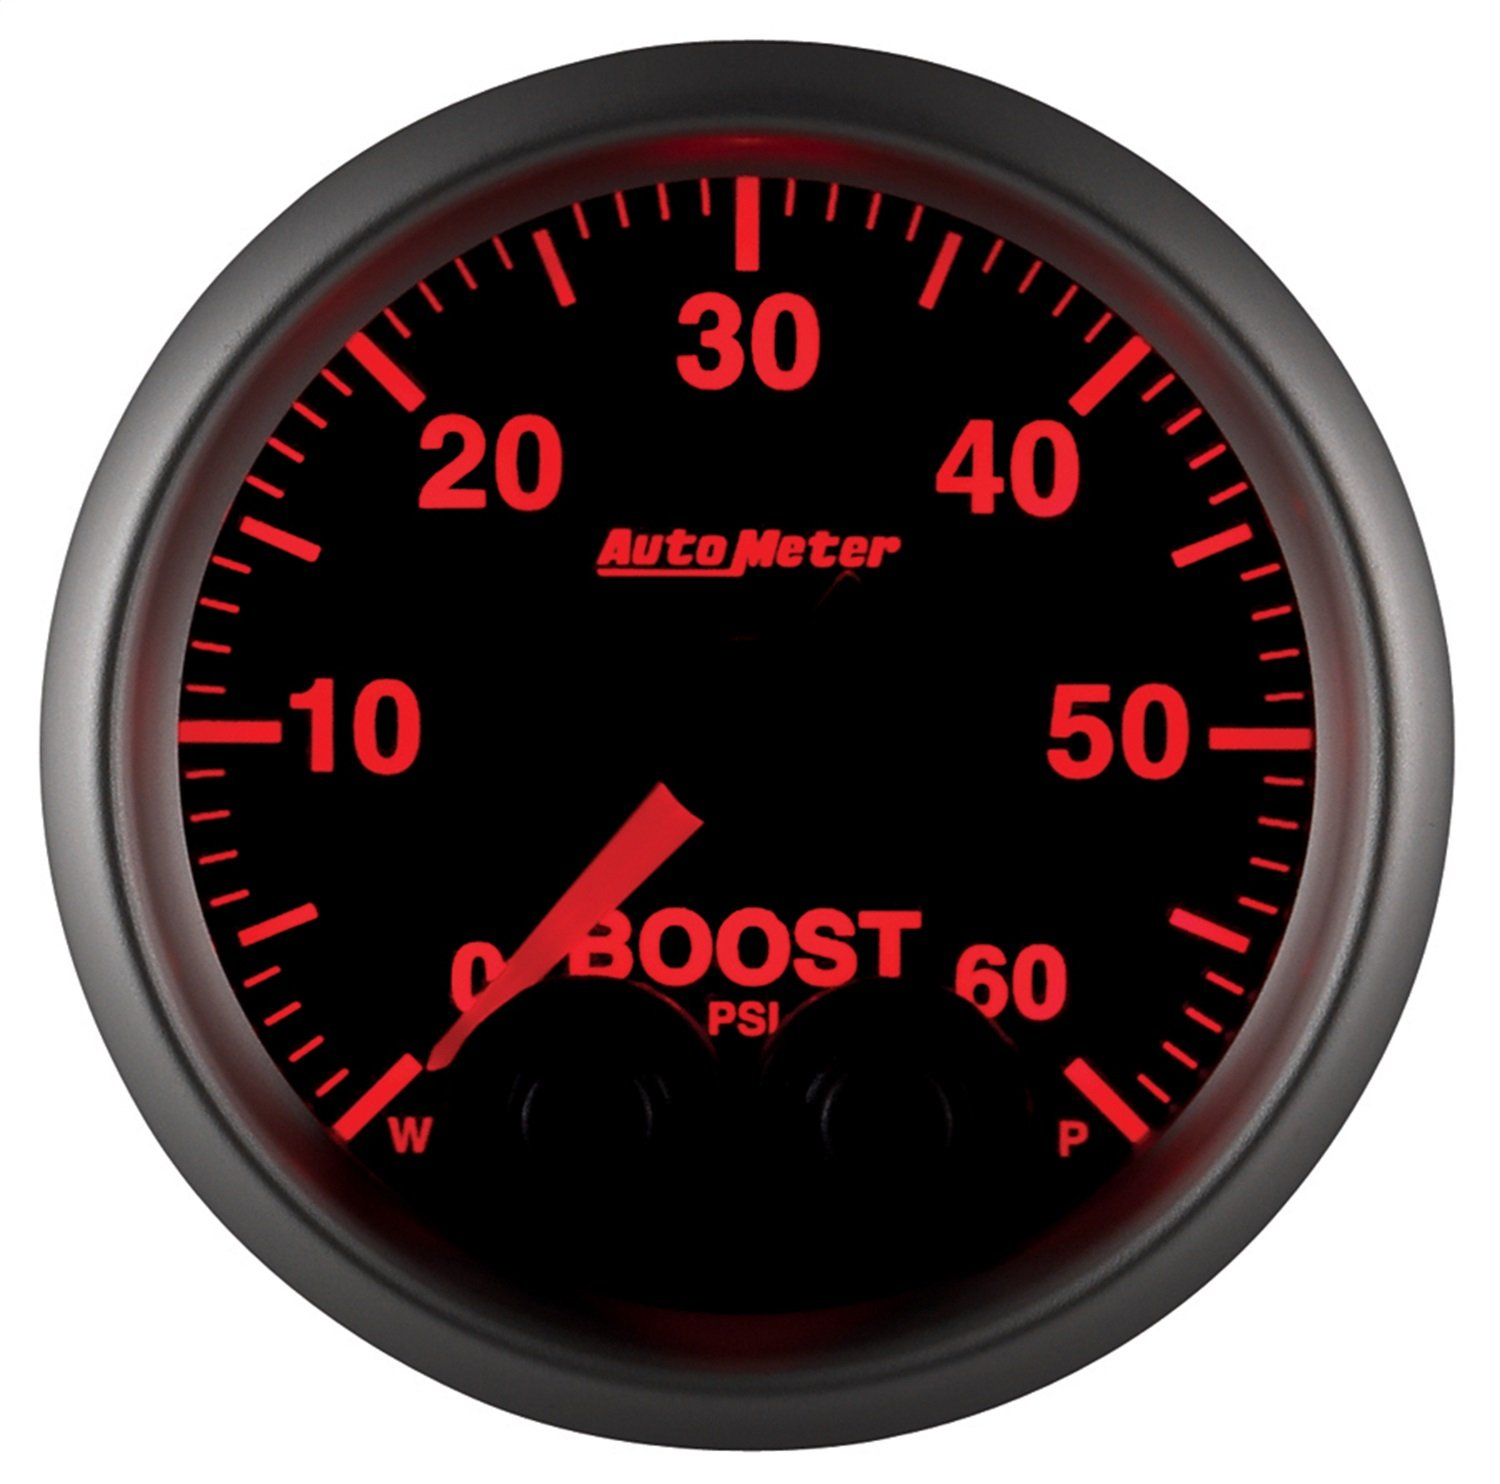 Auto Meter 5670 Elite Series Boost Gauge by AUTO METER